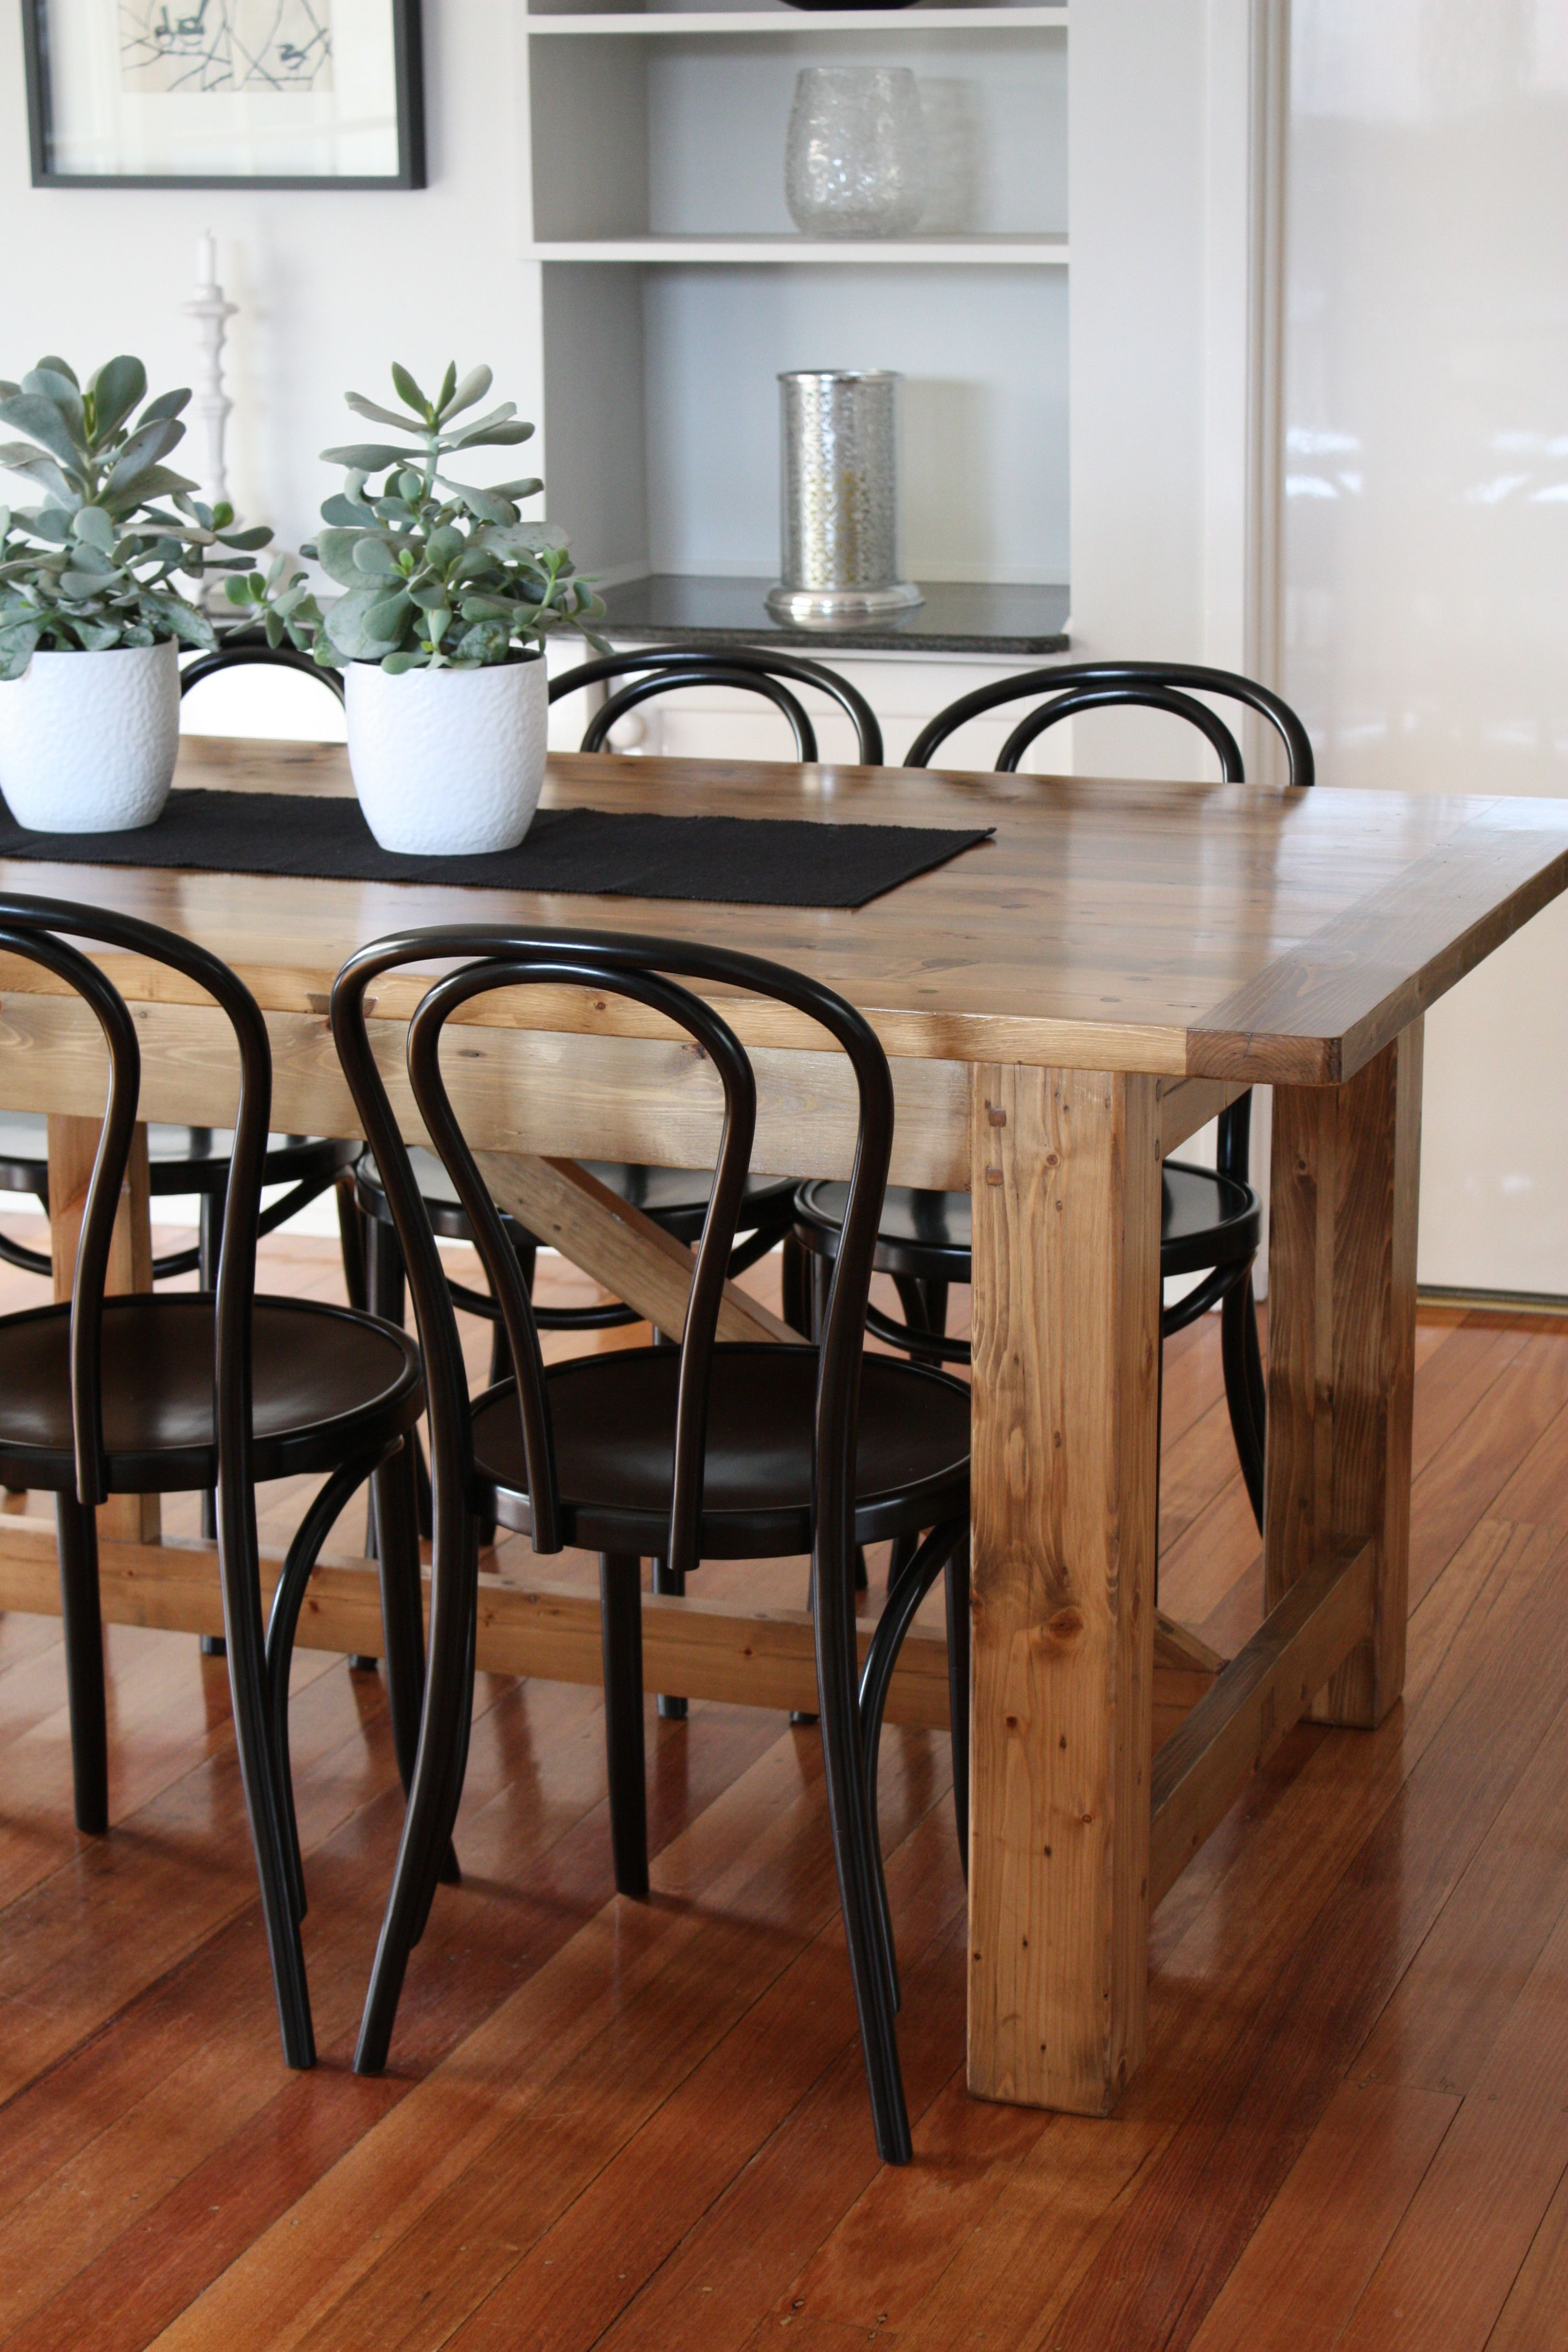 bentwood dining chair acrylic clear pin by allie mounce on inside outside room tall table timber rustic chairs reclaimed wood